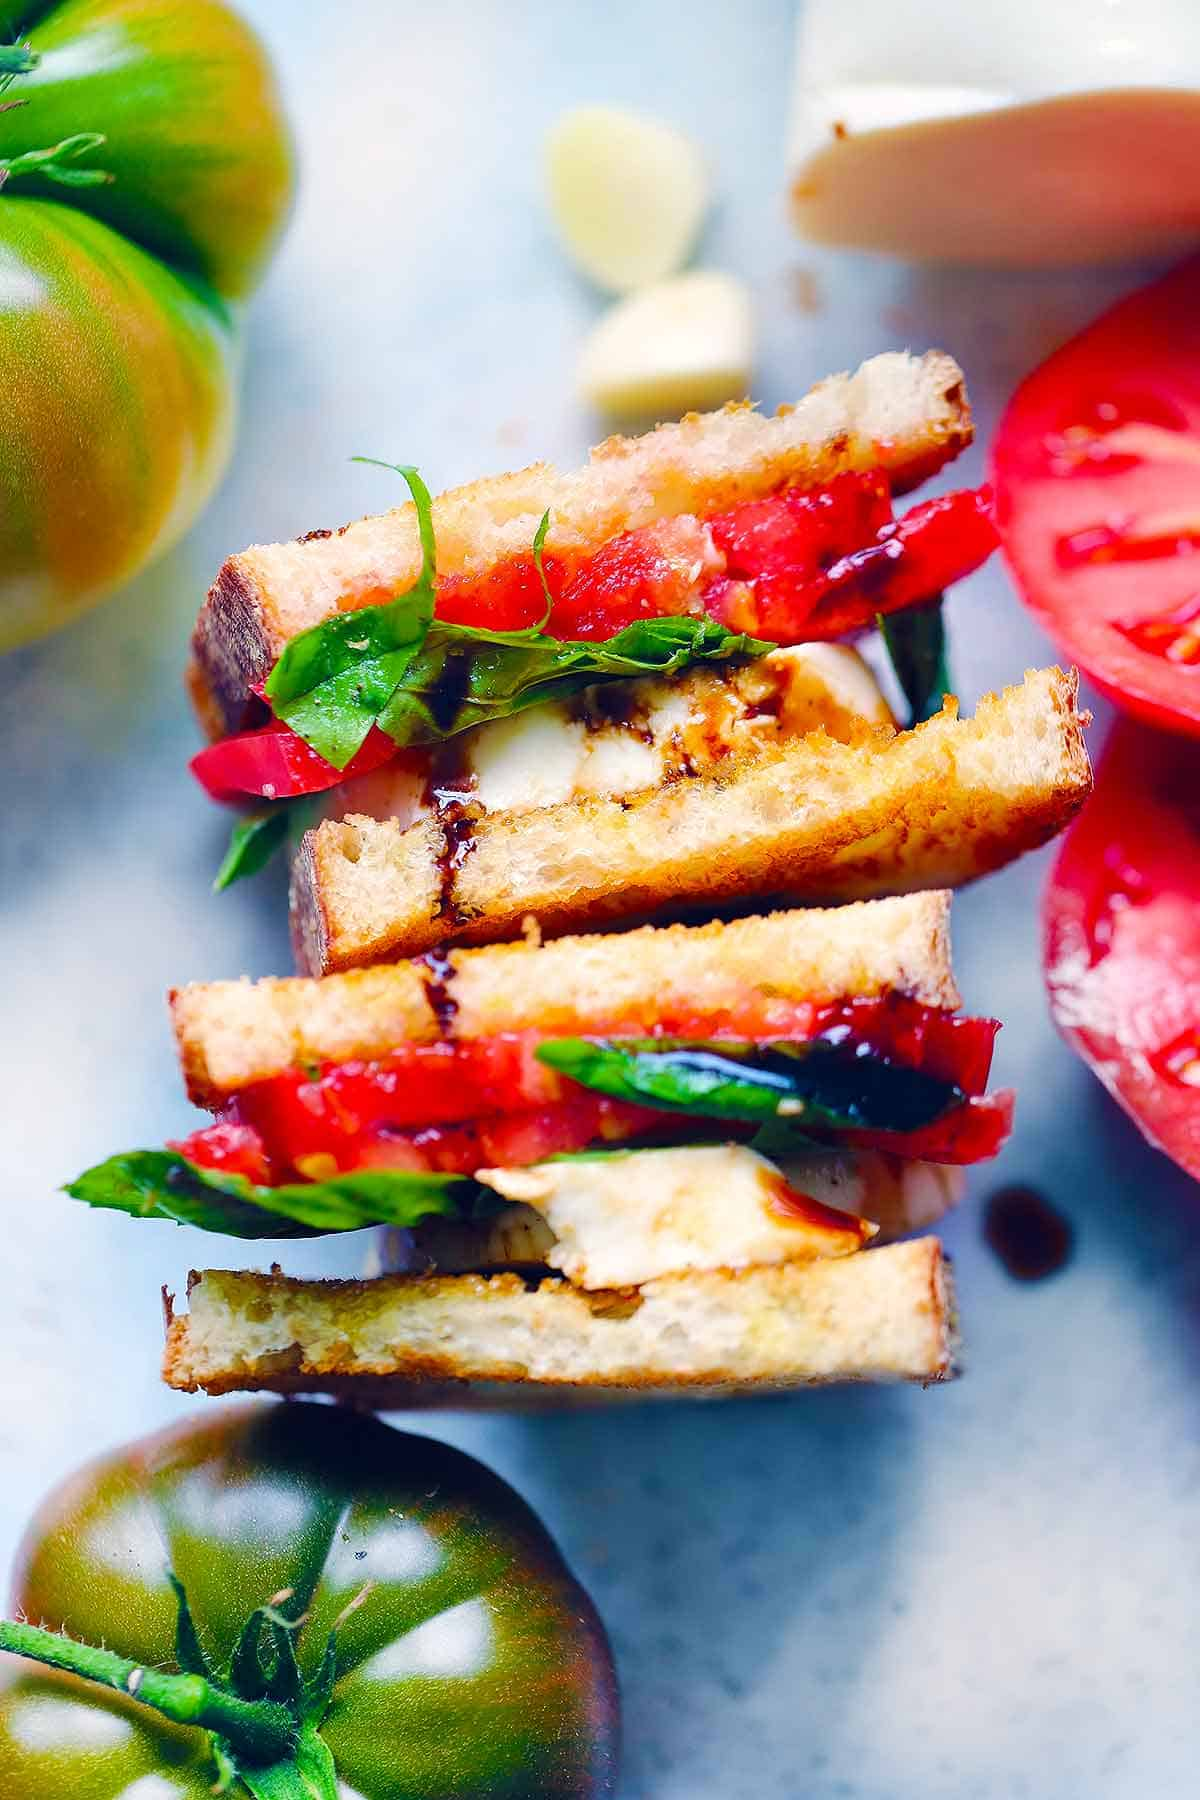 These Caprese sandwiches are my absolute favorite vegetarian sandwich, topped with EVOO and a sweet and tangy balsamic glaze.